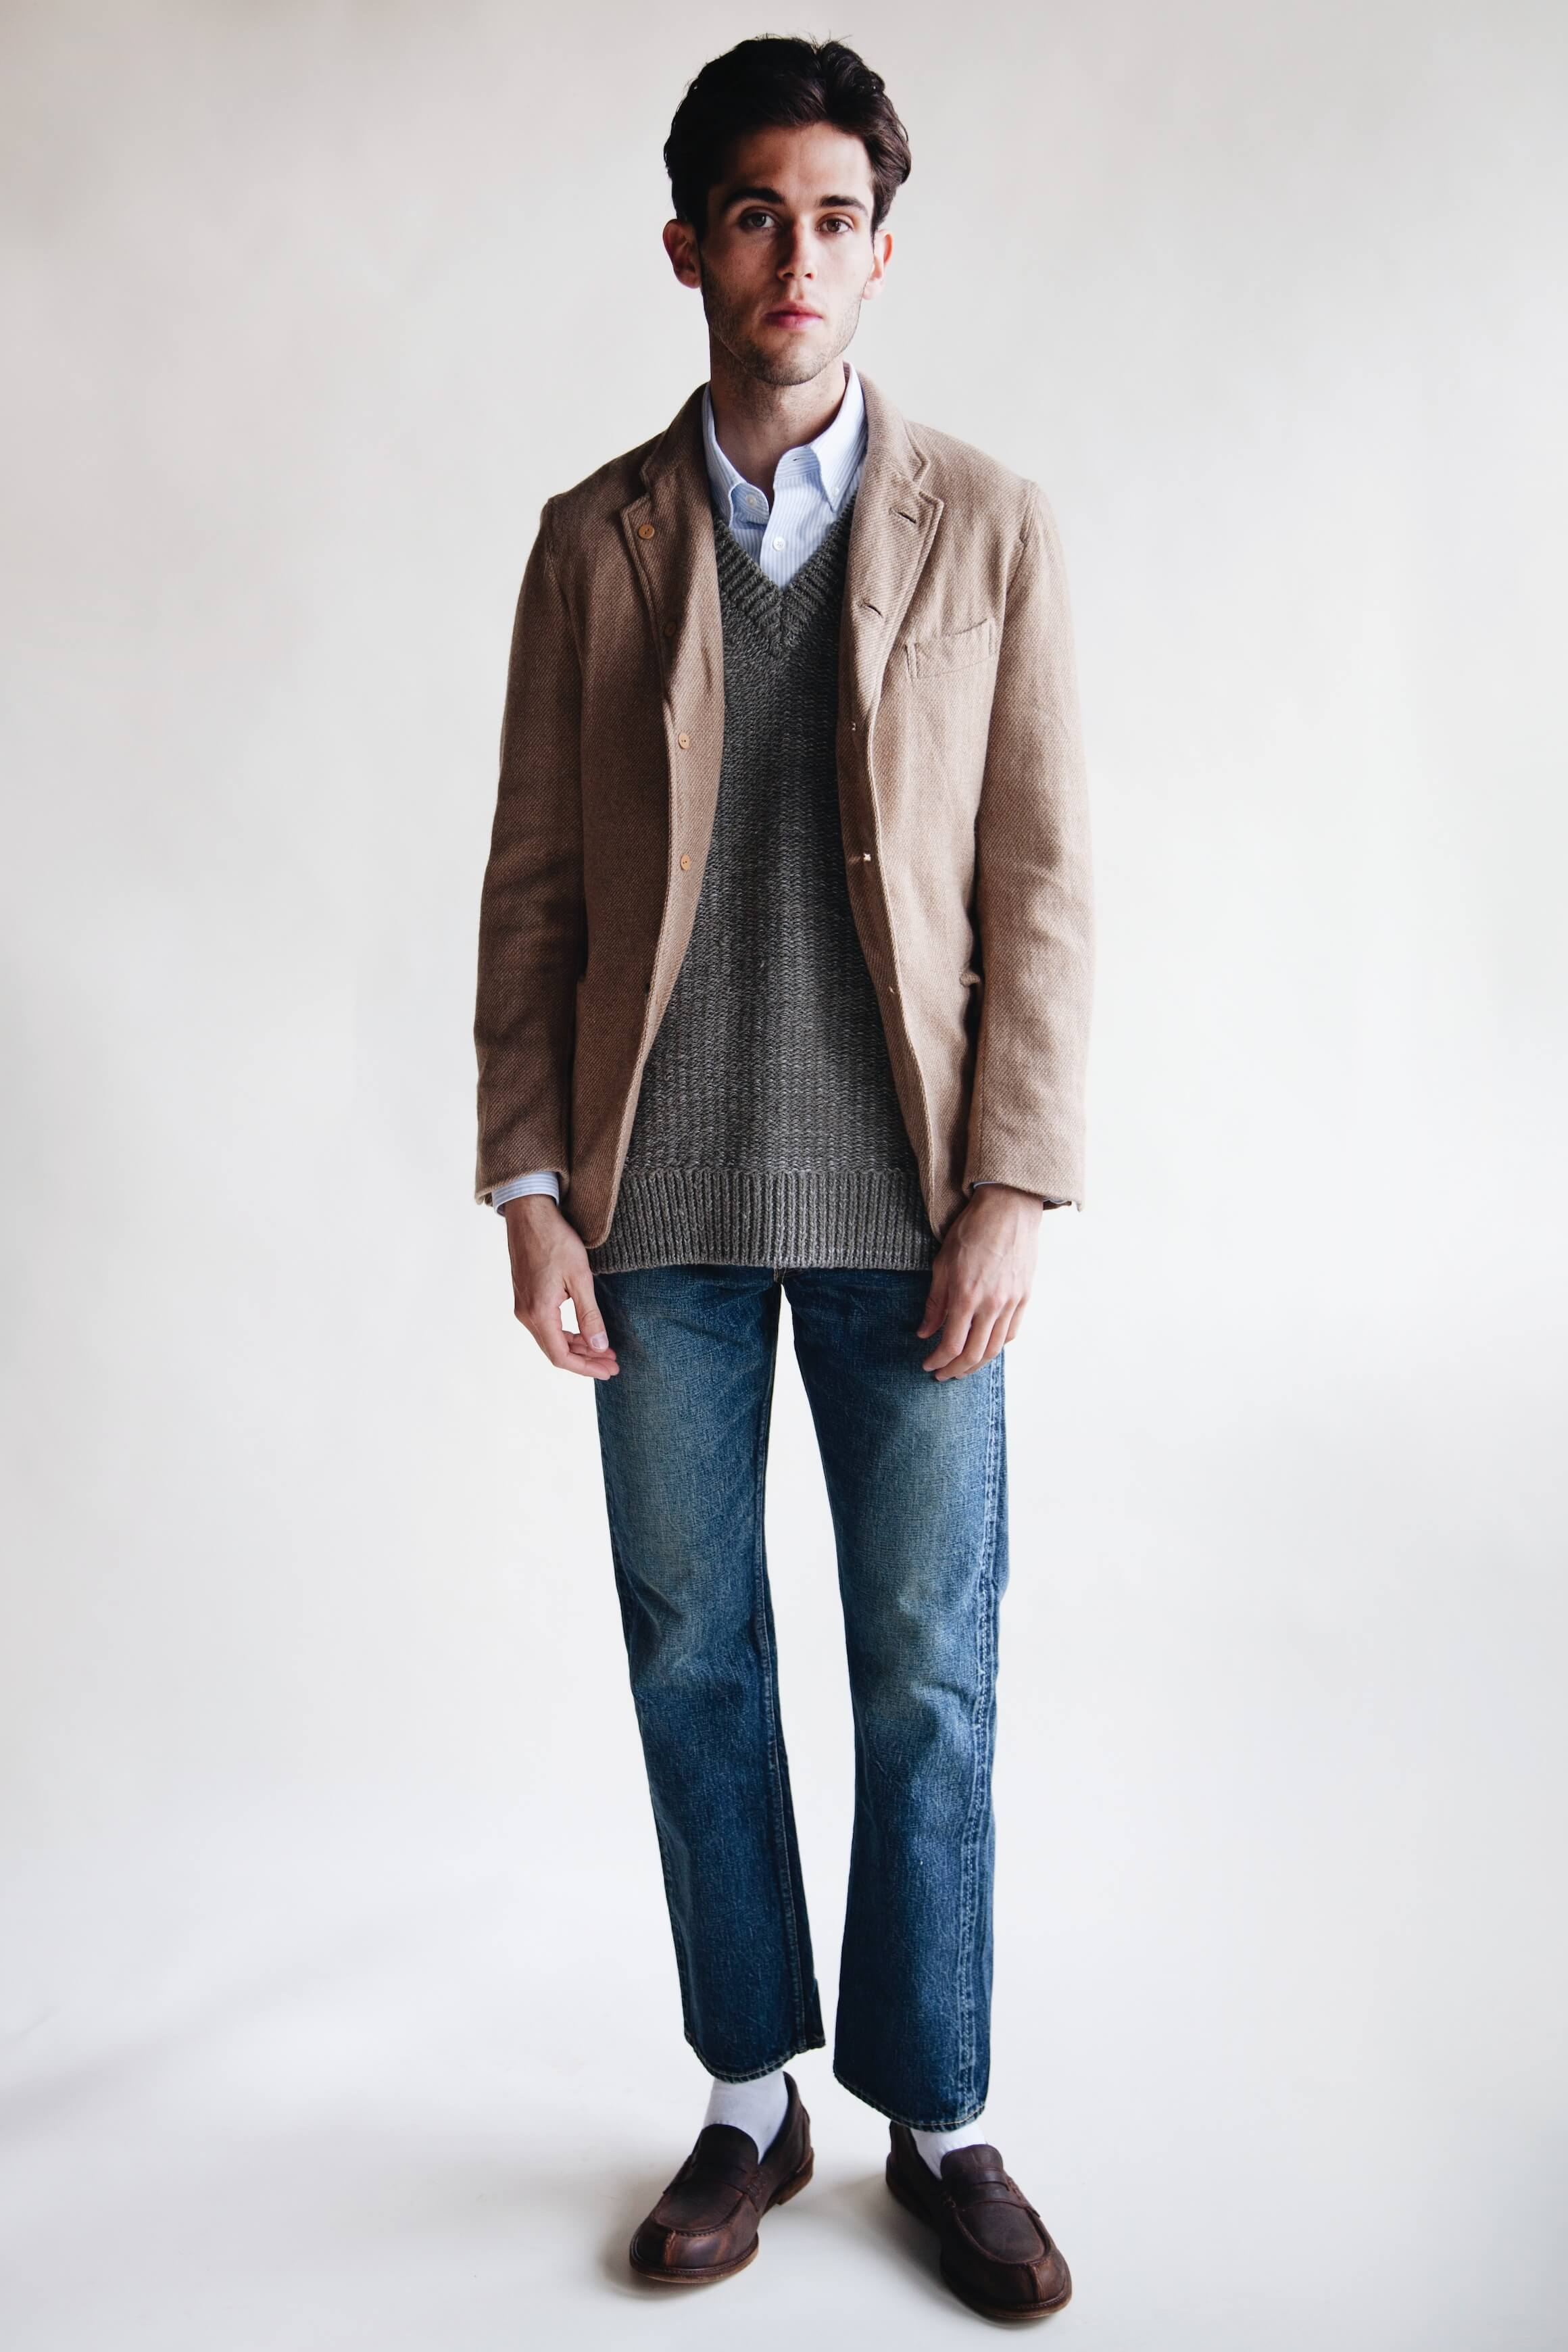 harmony paris celestin shirt, full count 1101 dartford denim and classic wool check blazer, visvim tussar v-neck vest hender scheme slouchy shoes on body